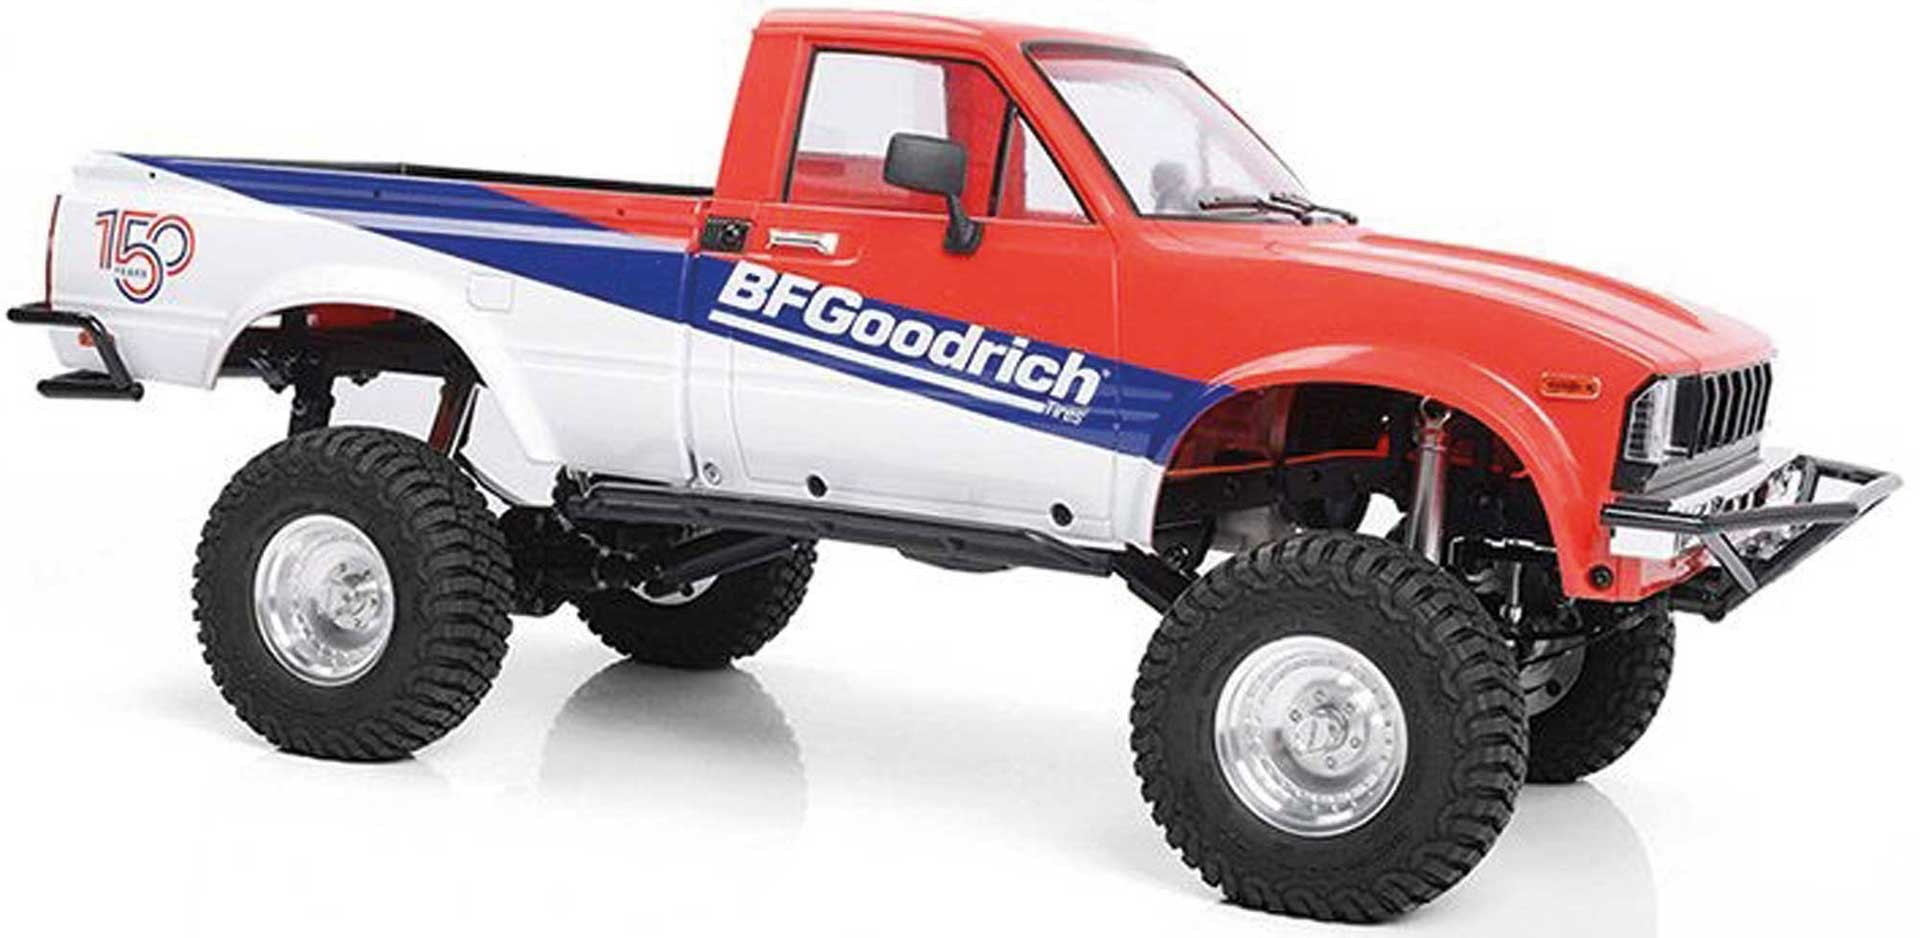 RC4WD TRAIL FINDER 2 RTR W/MOJAVE II BODY SET BFGOODRICH 150TH ANNIVERSARY EDITION